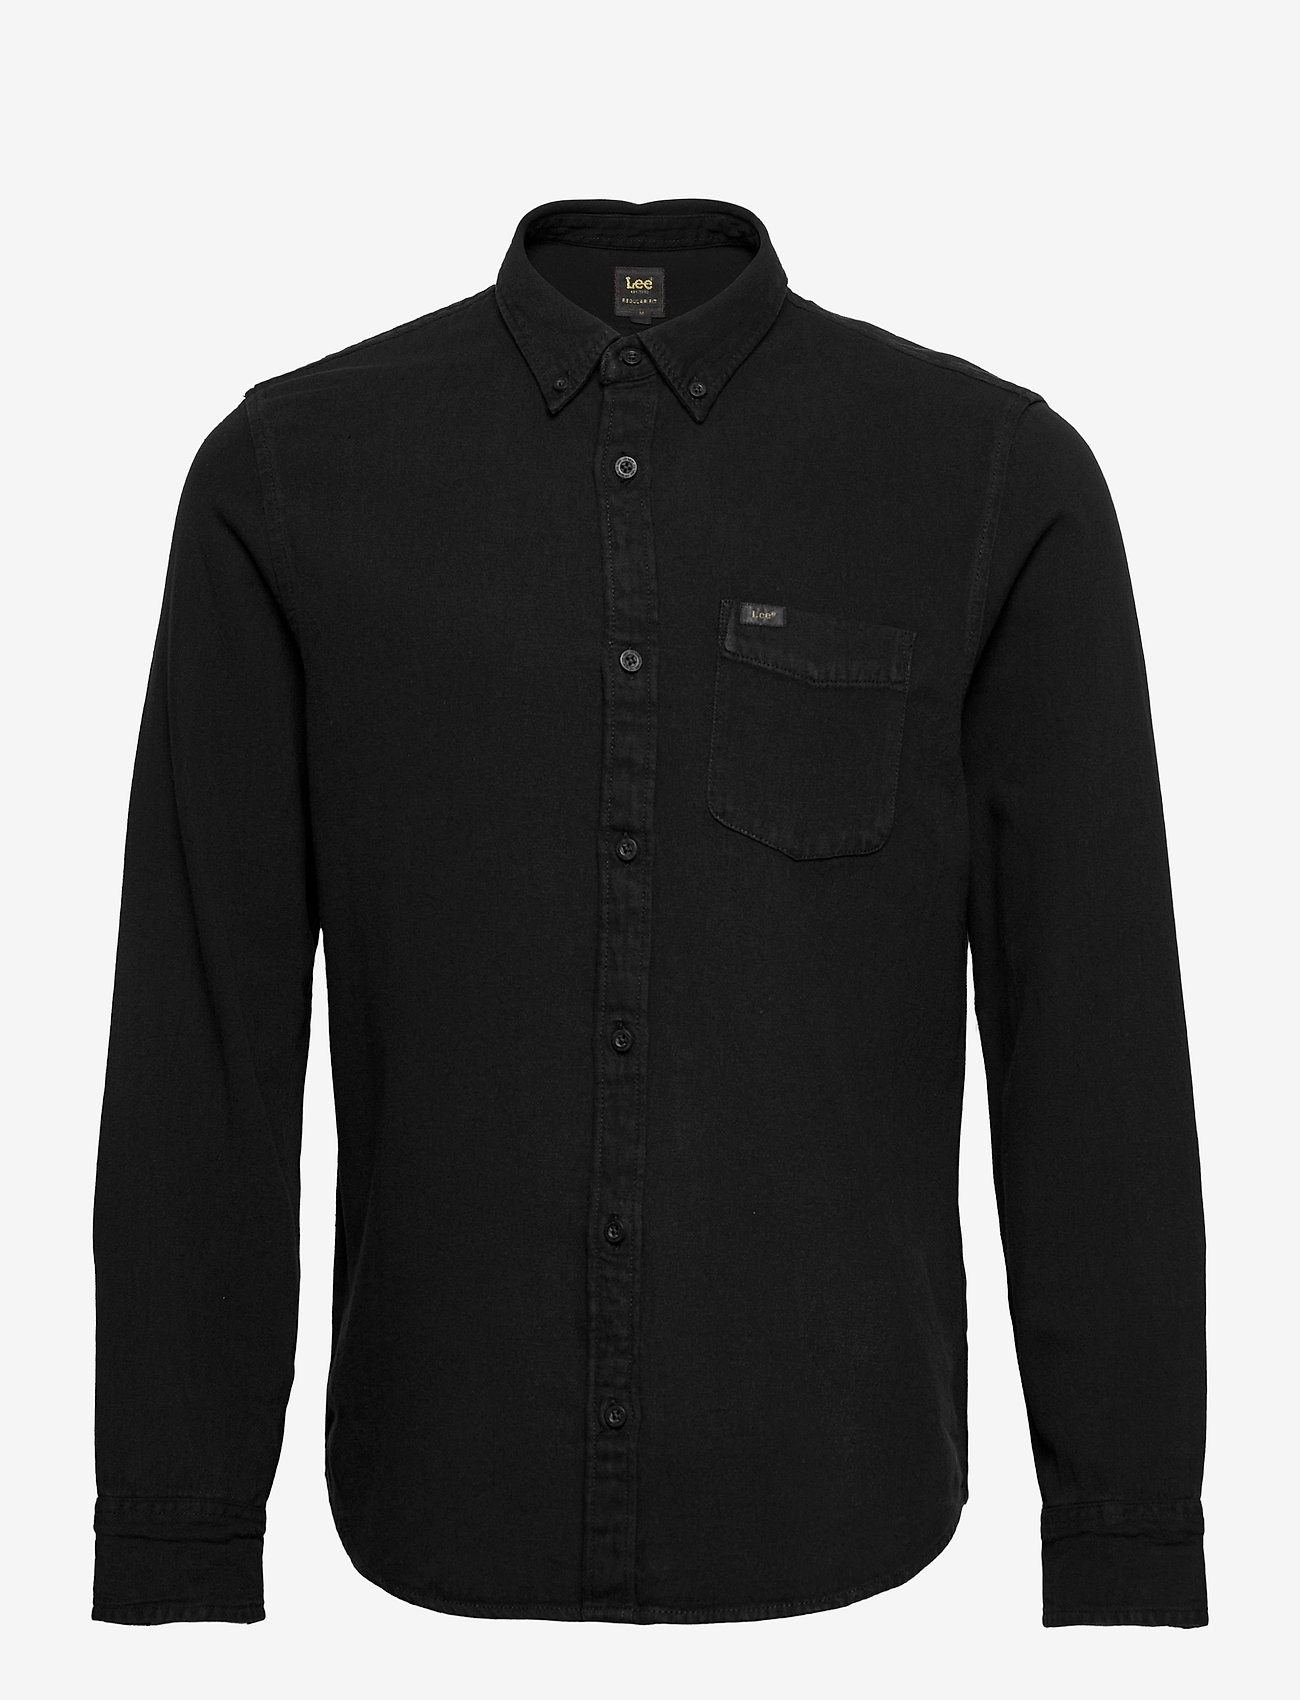 Lee Jeans - LEE BUTTON DOWN - denim shirts - black - 0